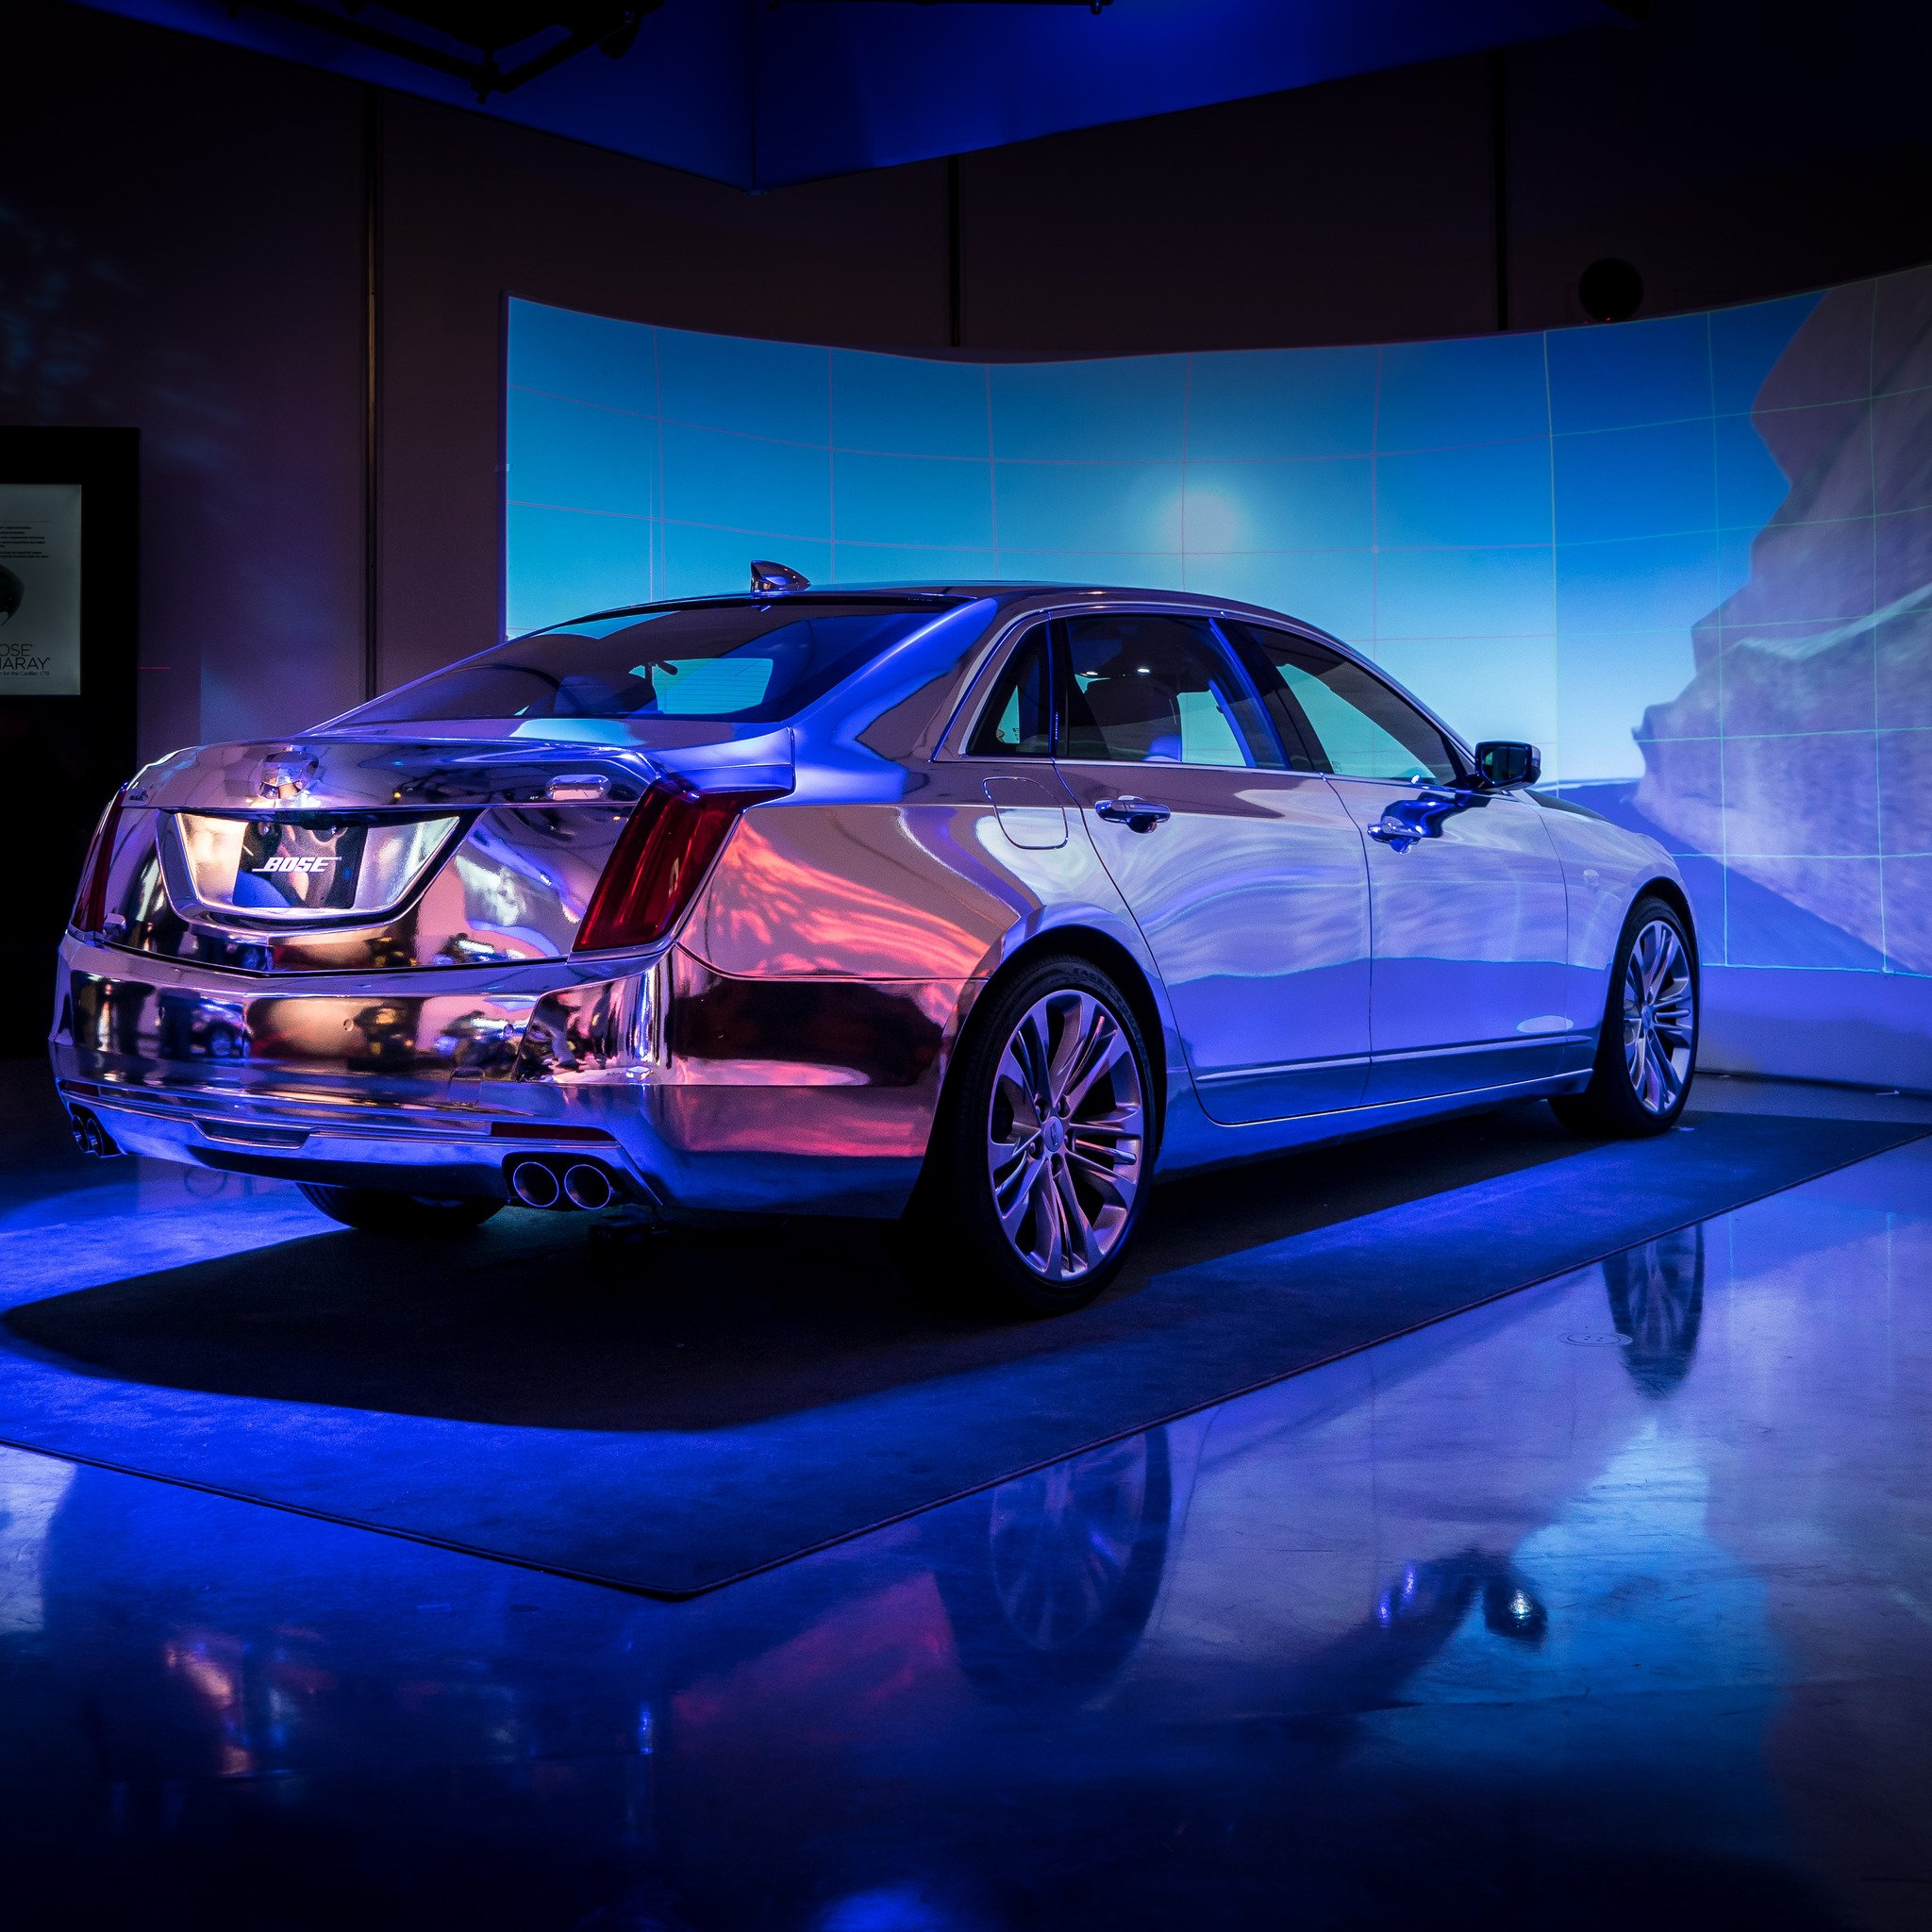 Experience the affecting power of @Bose Panaray in the first-ever #Cadillac #CT6, now on display at #CES2016 https://t.co/vSrIMxOgKY